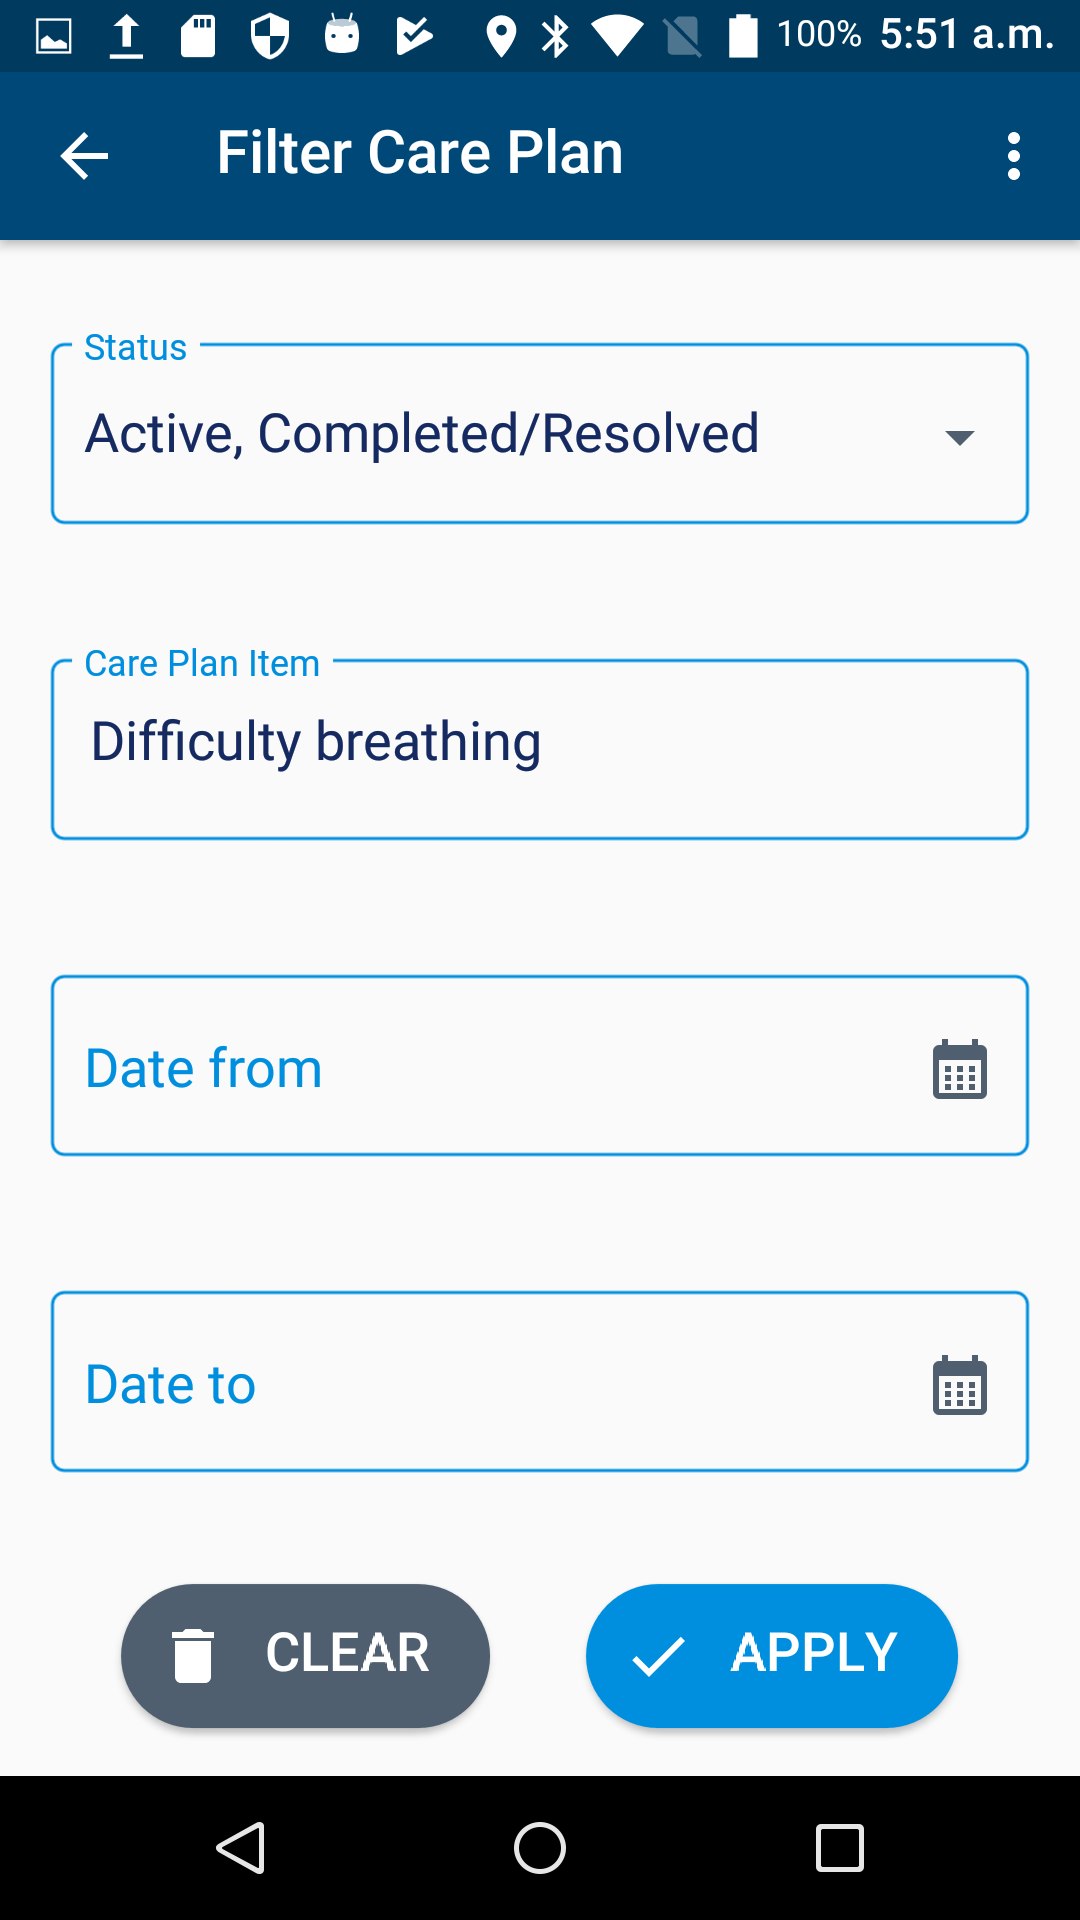 filter_care_plan_1_android.png